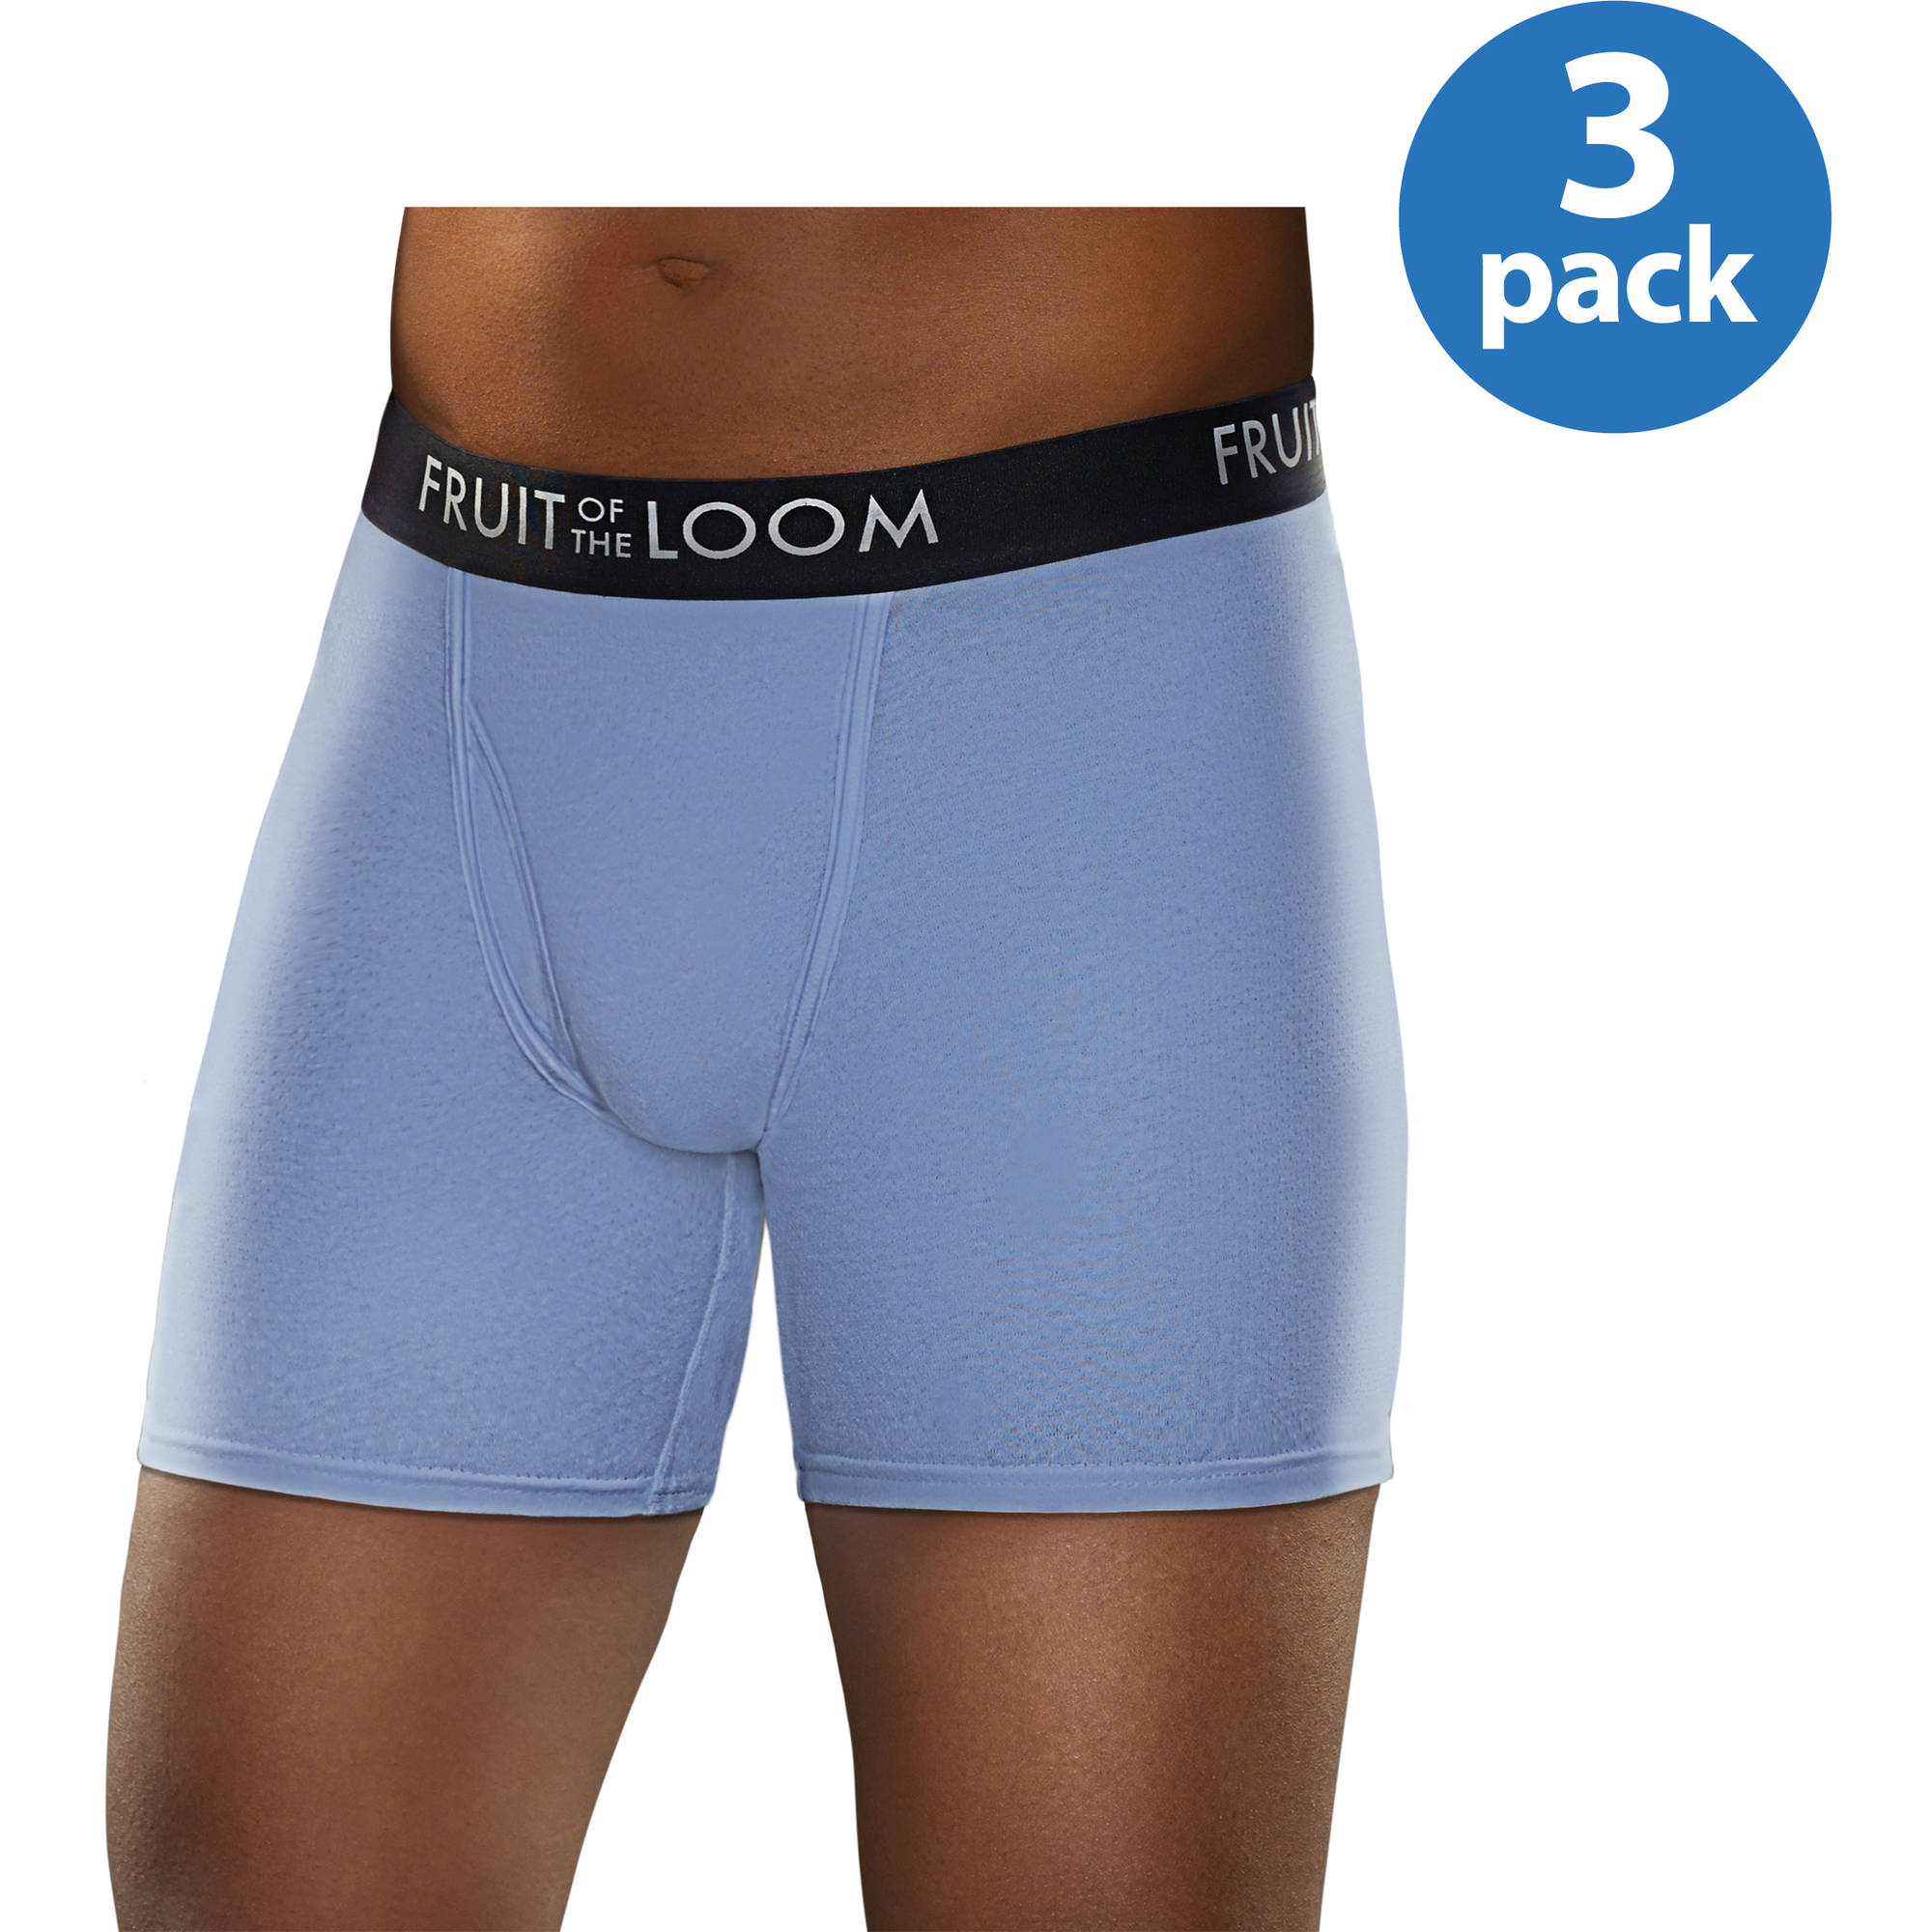 Fruit of the Loom Men's Breathable Assorted Color Boxer Brief, 3 Pack